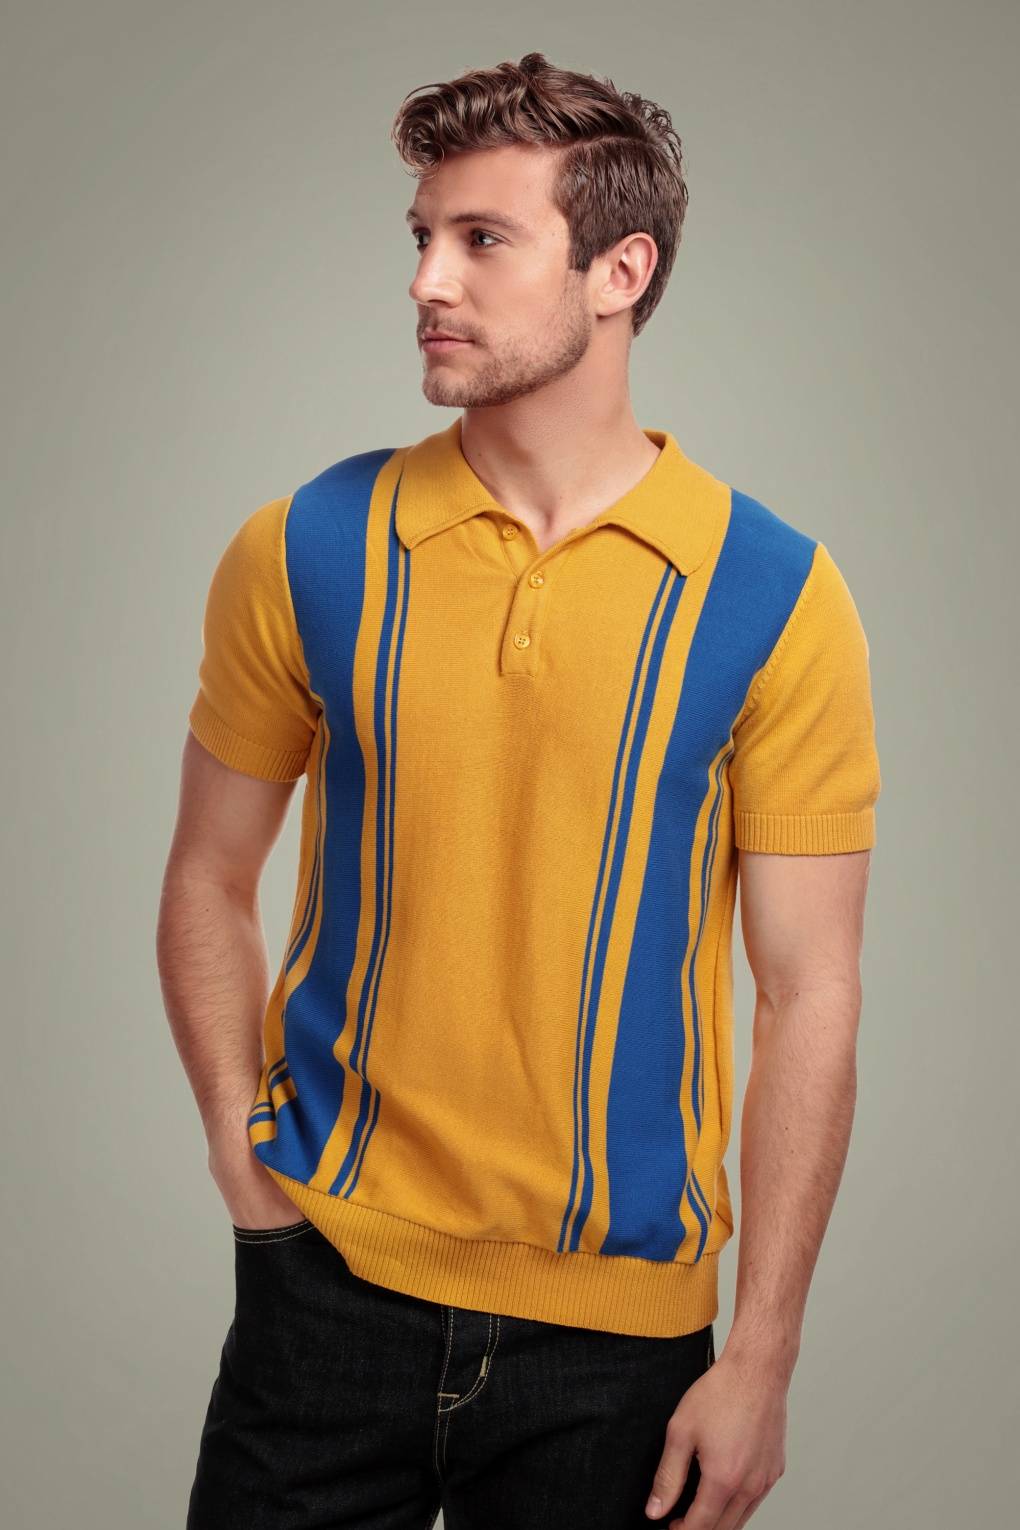 1960s -1970s Men's Clothing 50s Pablo Striped Knitted Polo Shirt in Yellow £41.85 AT vintagedancer.com